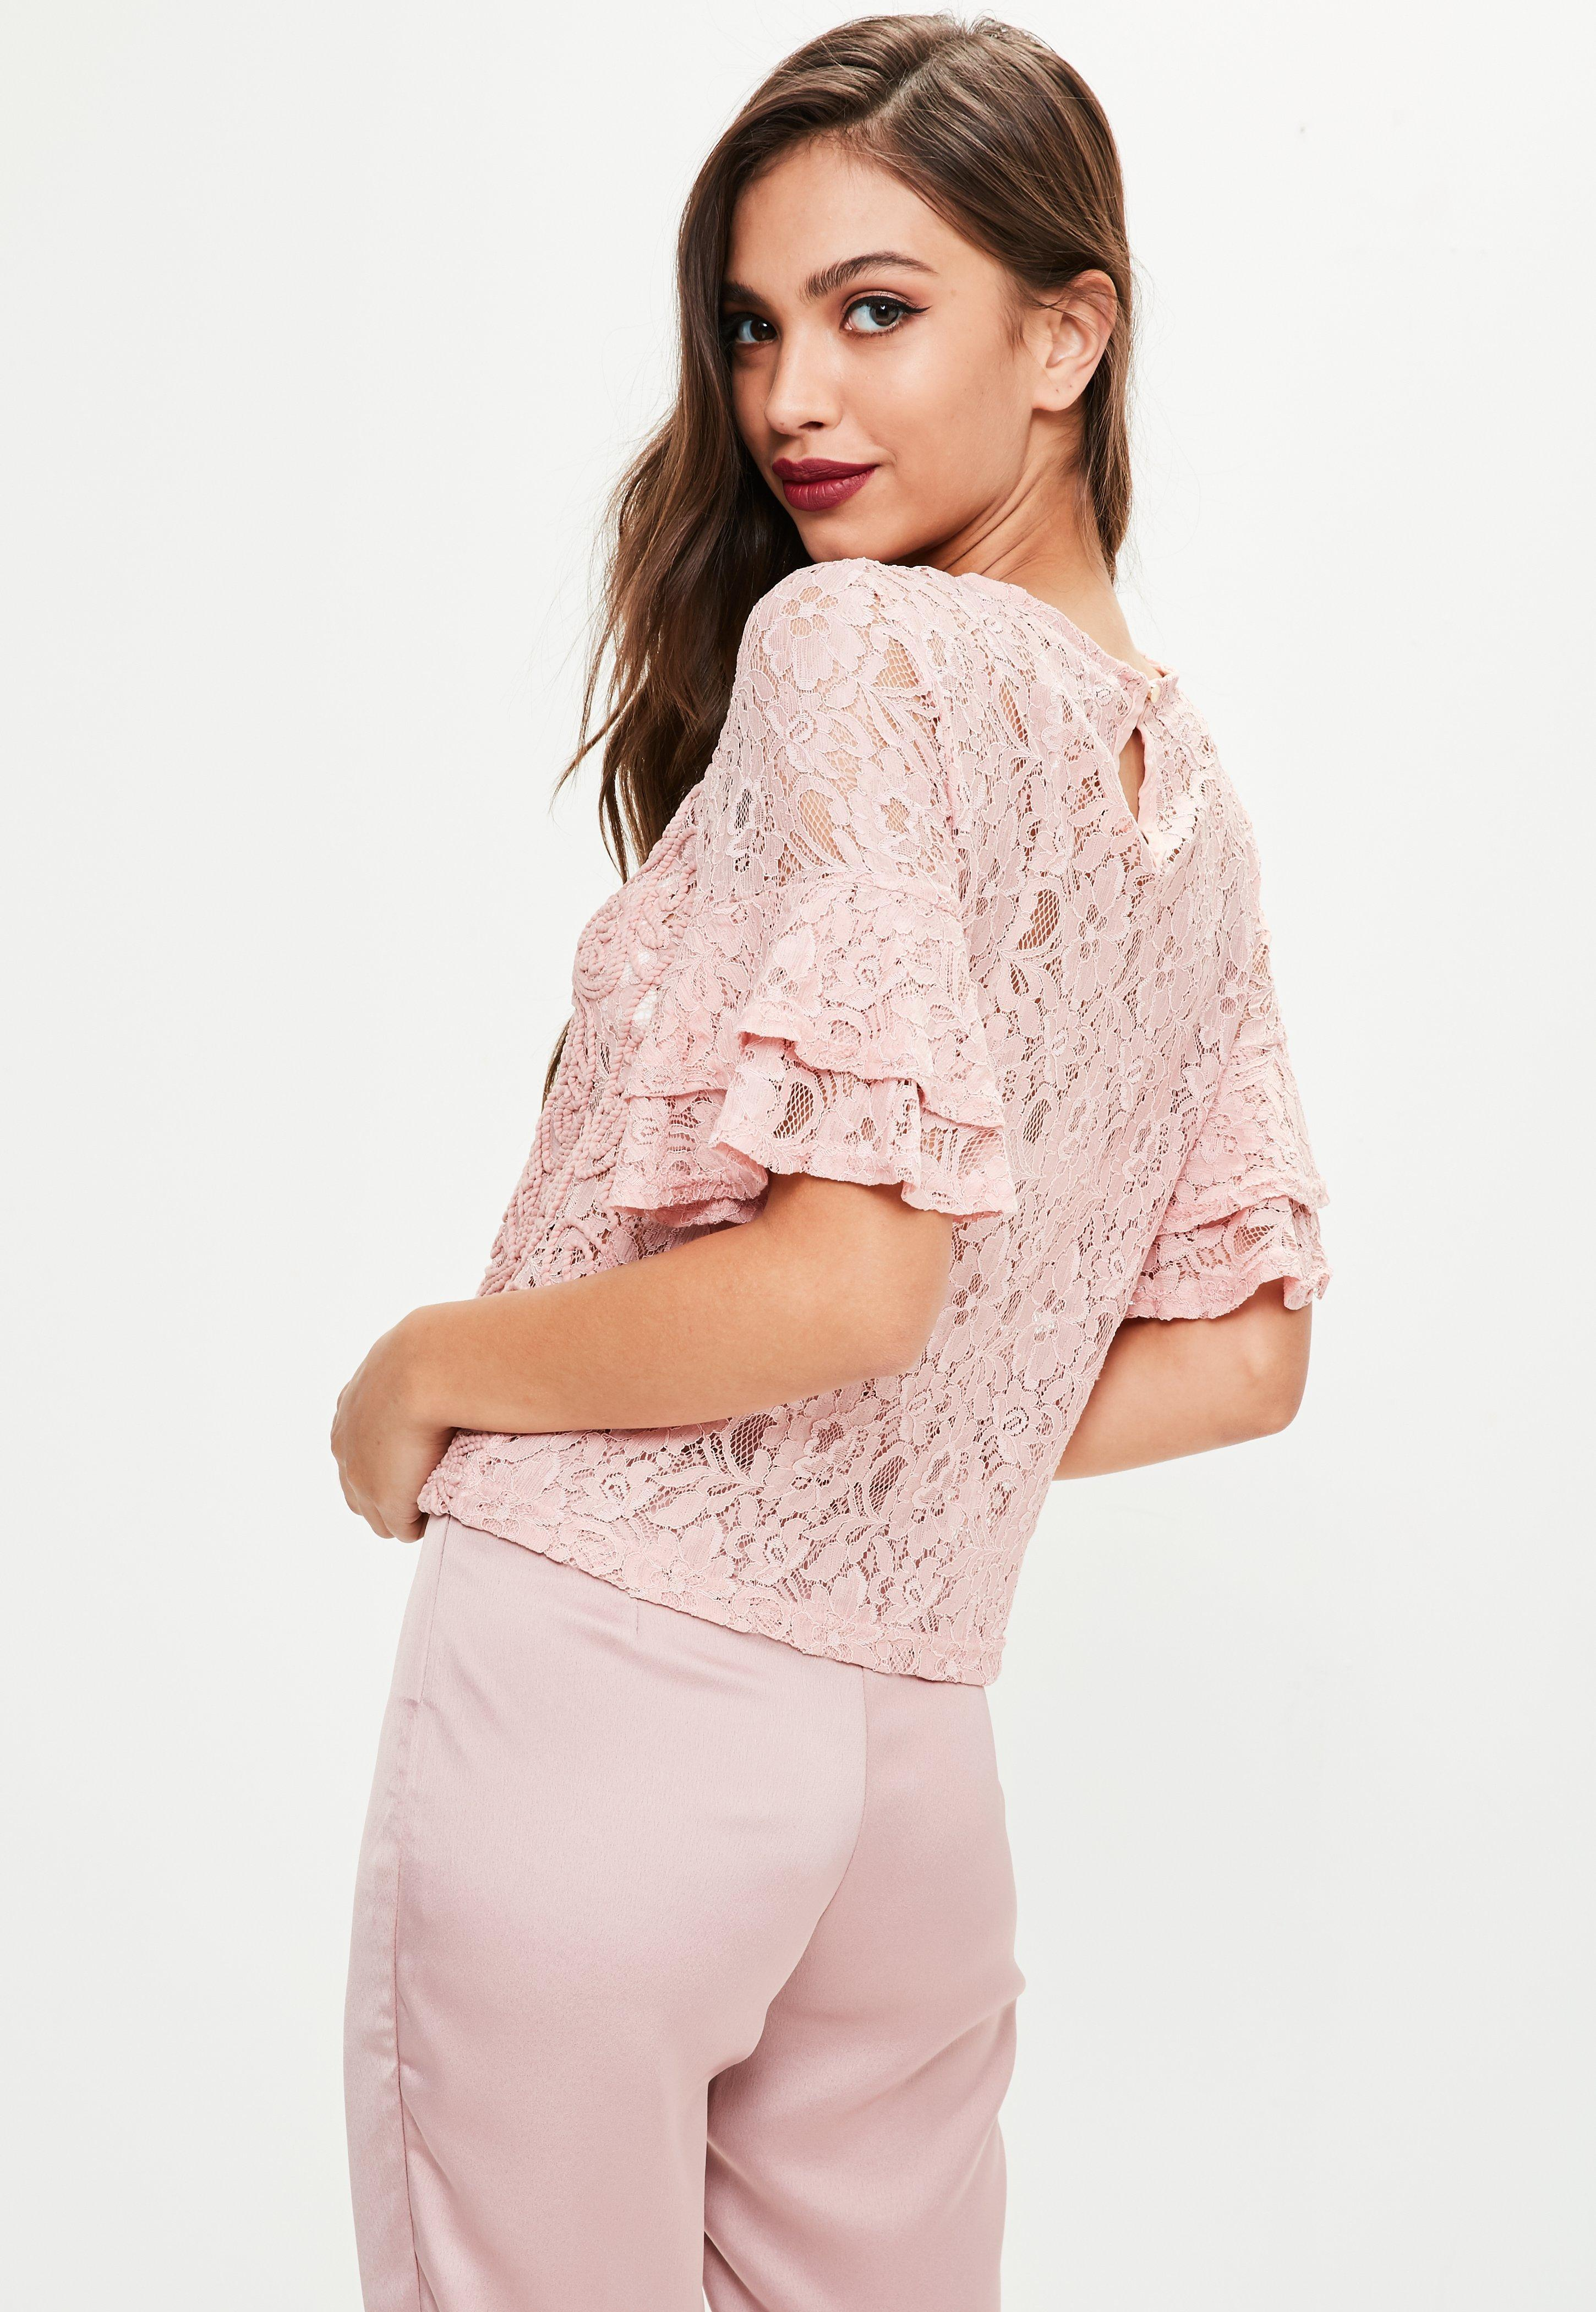 Lyst - Missguided Pink Lace Top in Pink